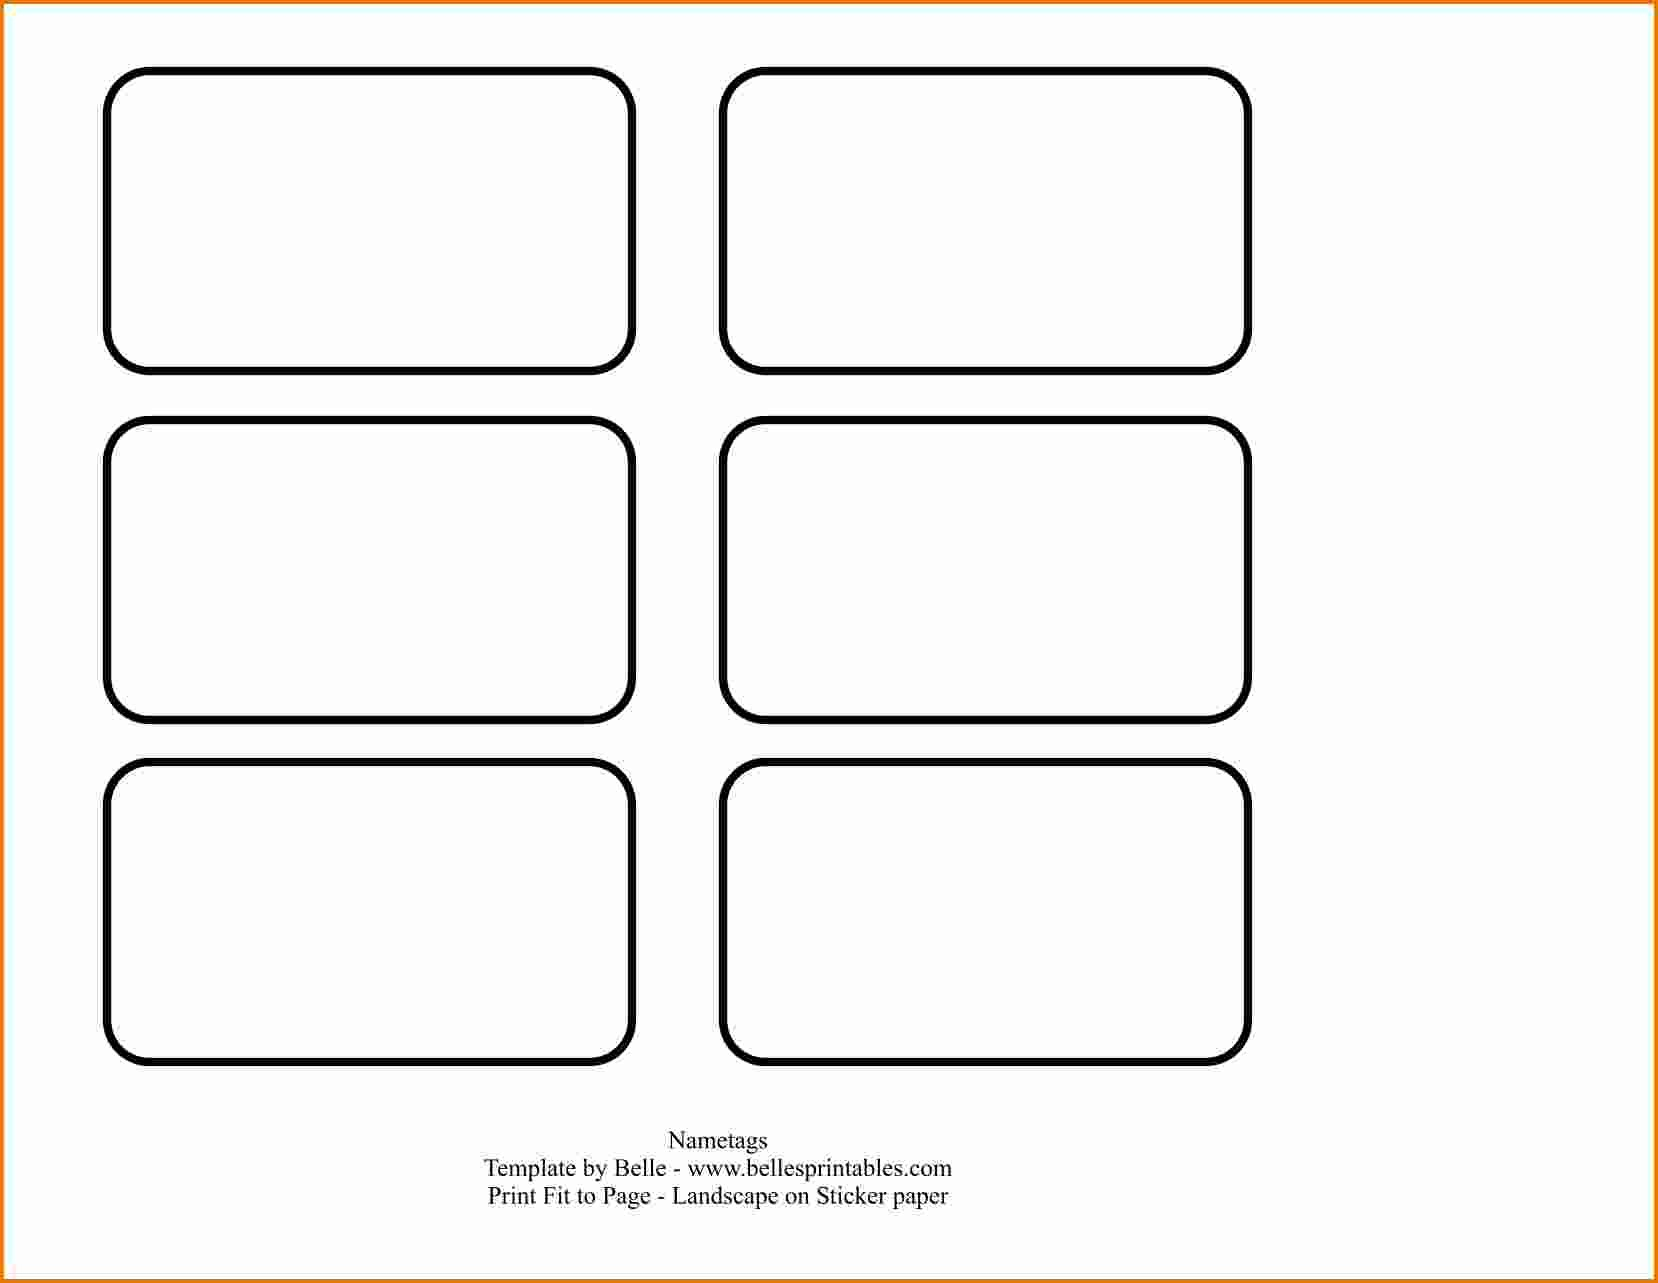 Free Online Label Templates Template Ideas Photo Printable Inside Free Label Templates Online